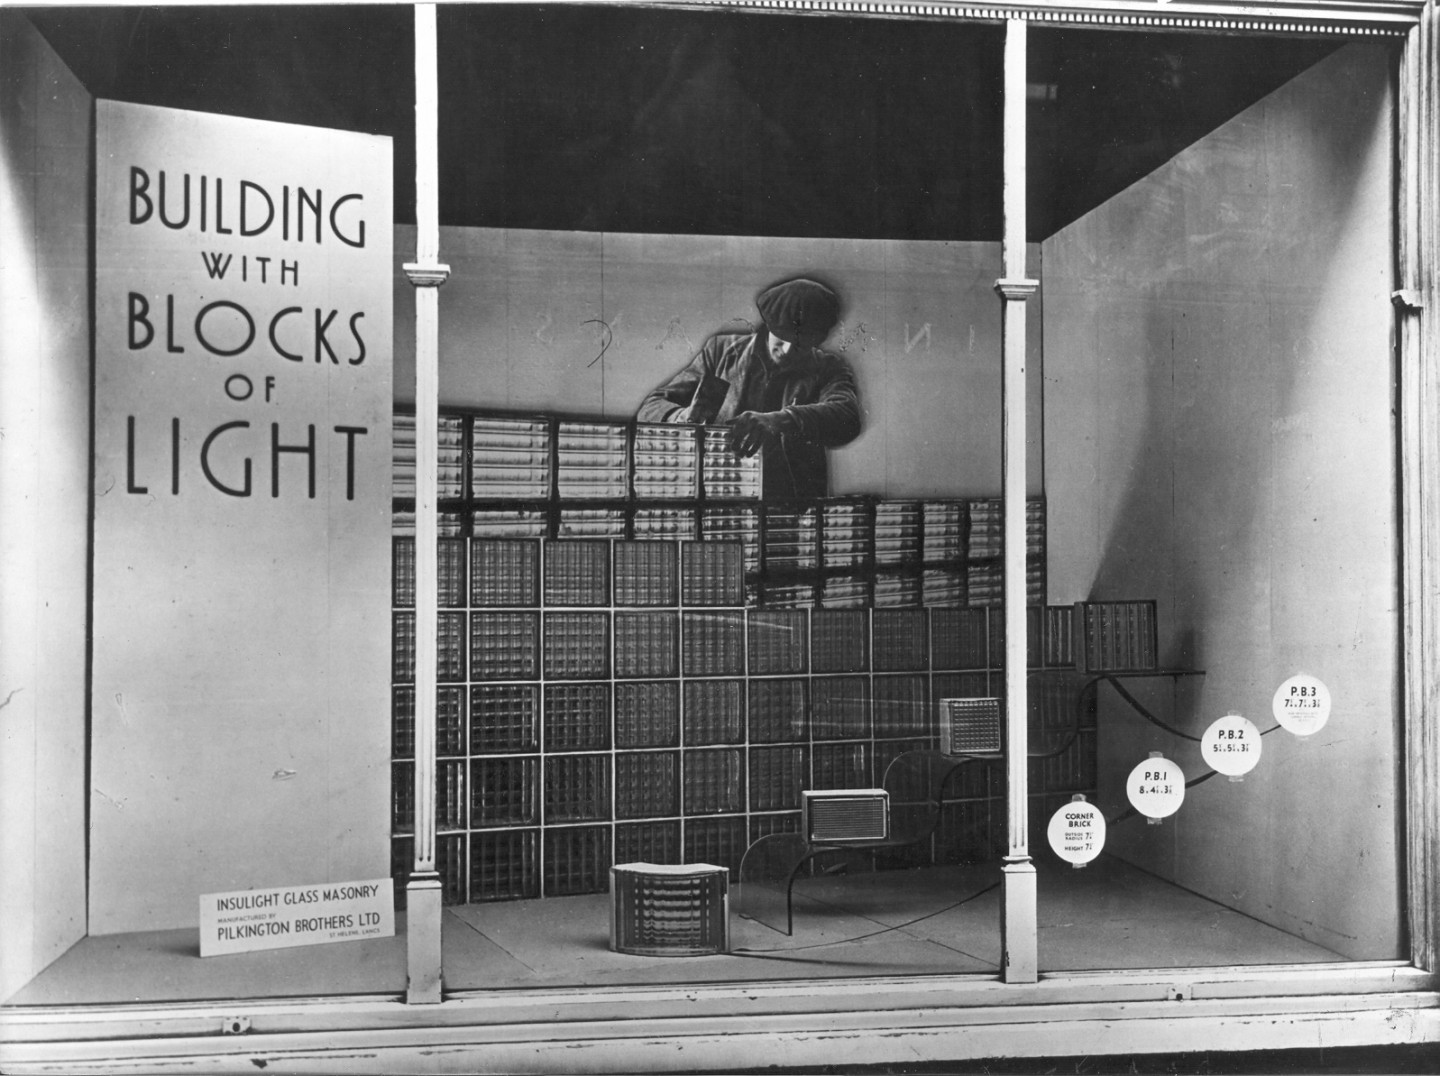 Bricks of light window display, 158 New Bond Street, 1936 © Building Centre archive